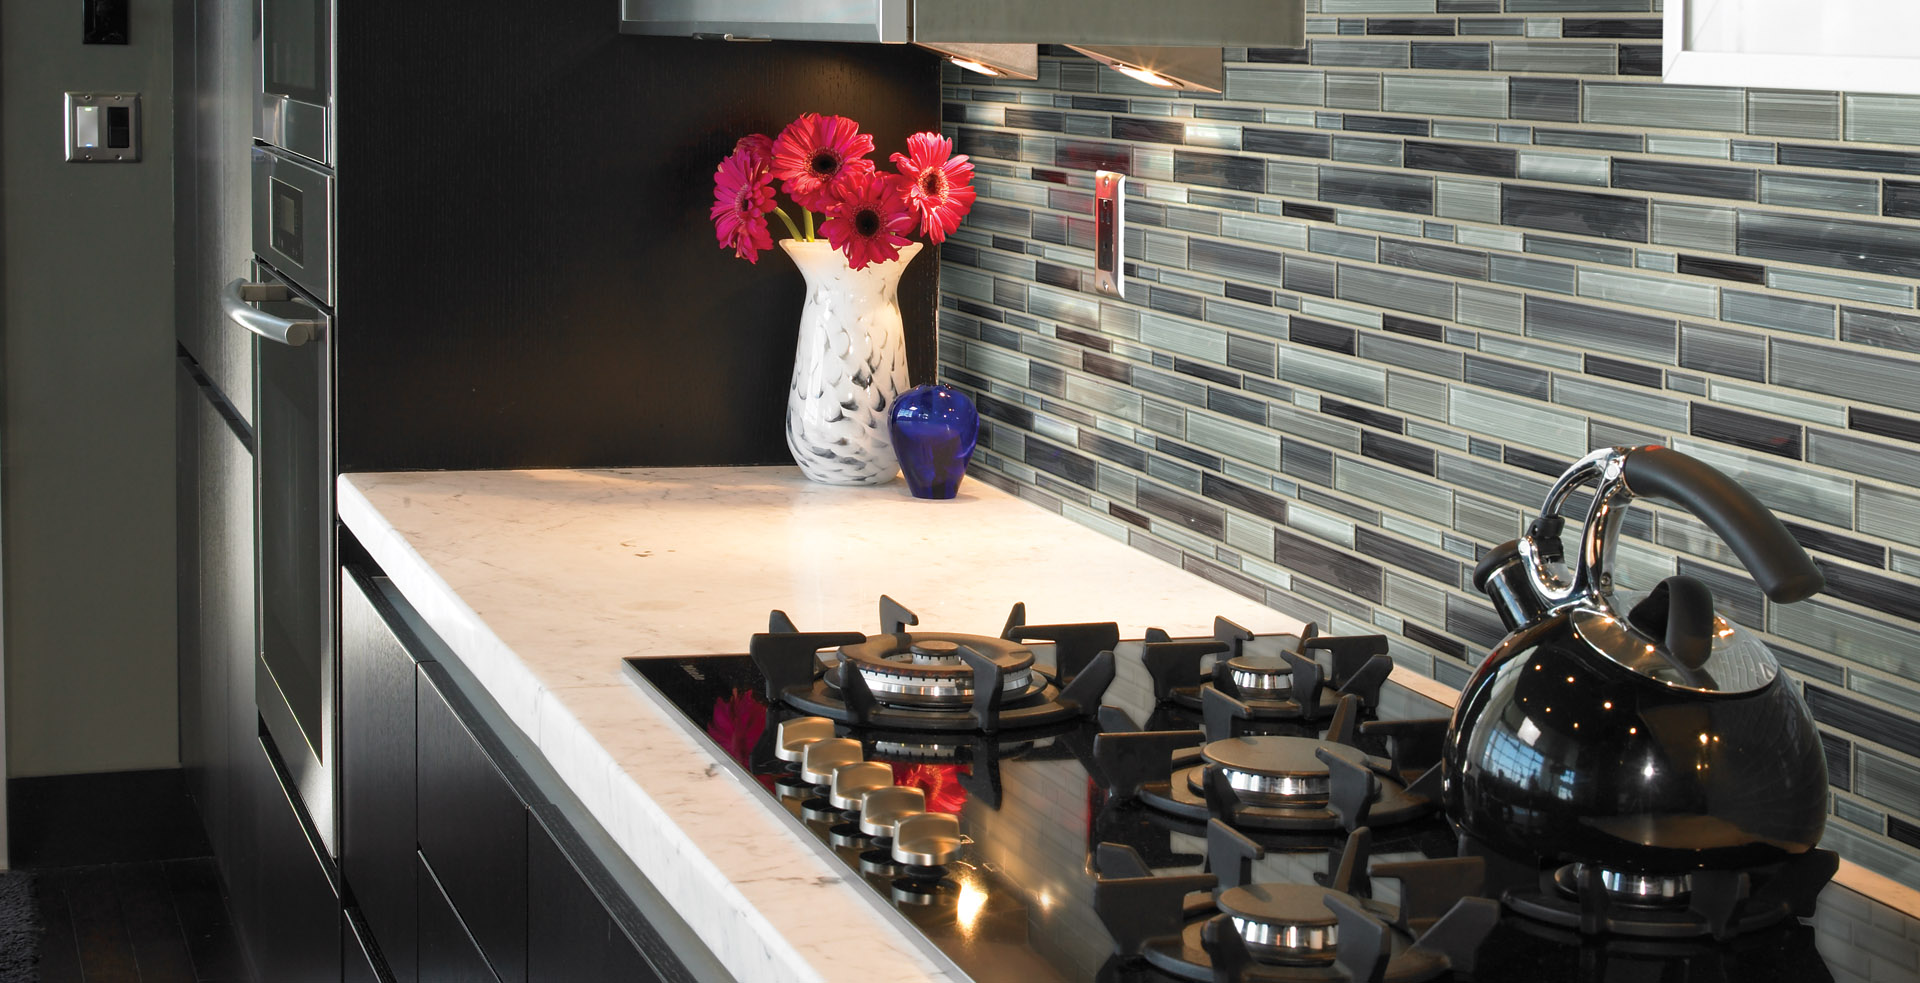 Countertop and backsplash